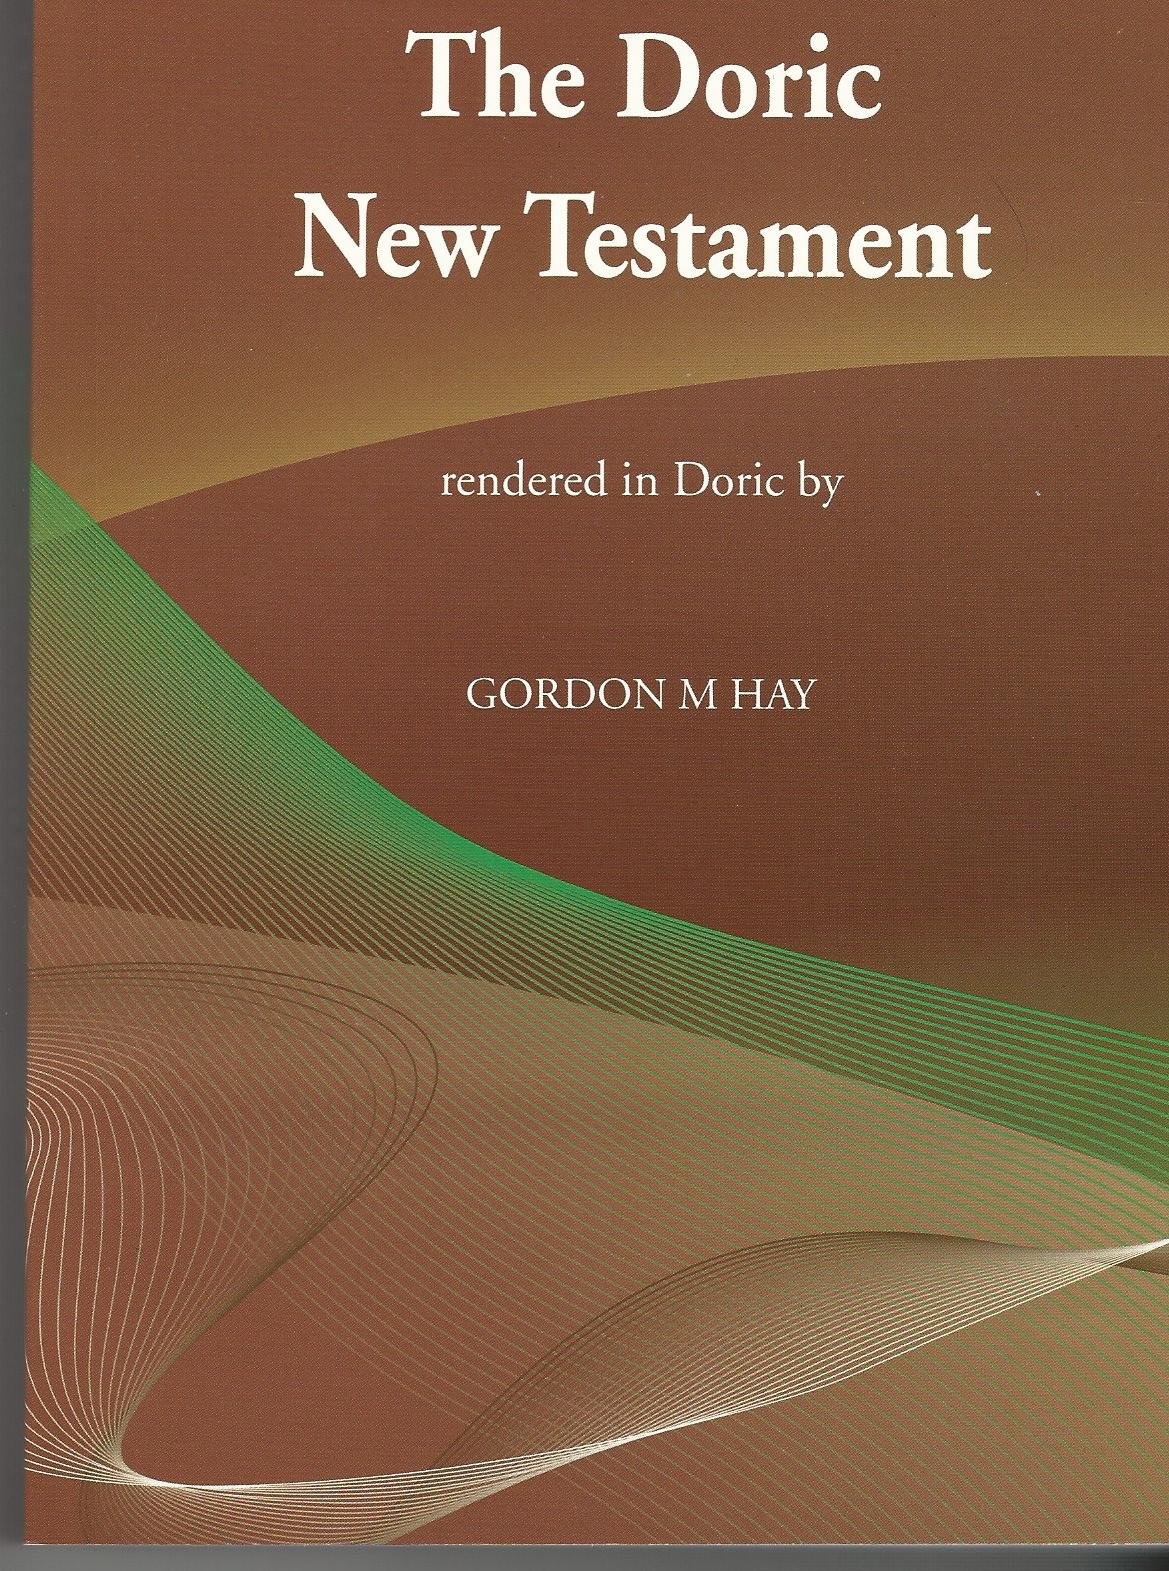 Image for The Doric New Testament.